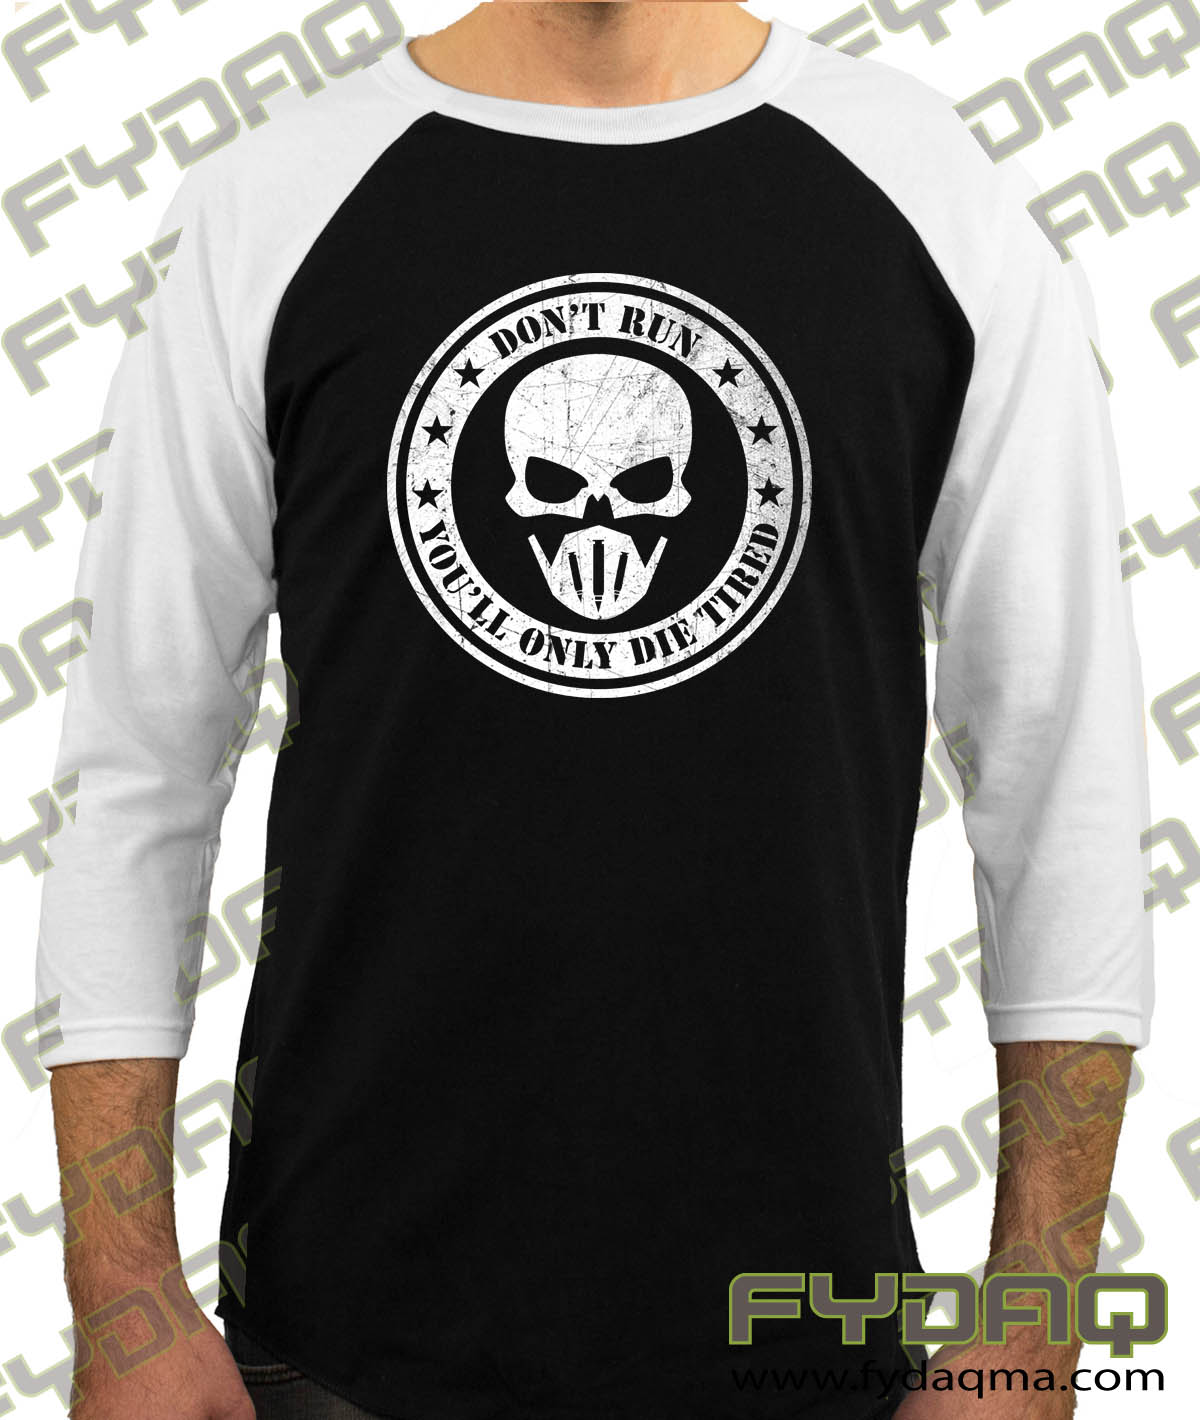 Don't-run-you'll-only-die-tired-raglan-white-sleeve-black-body